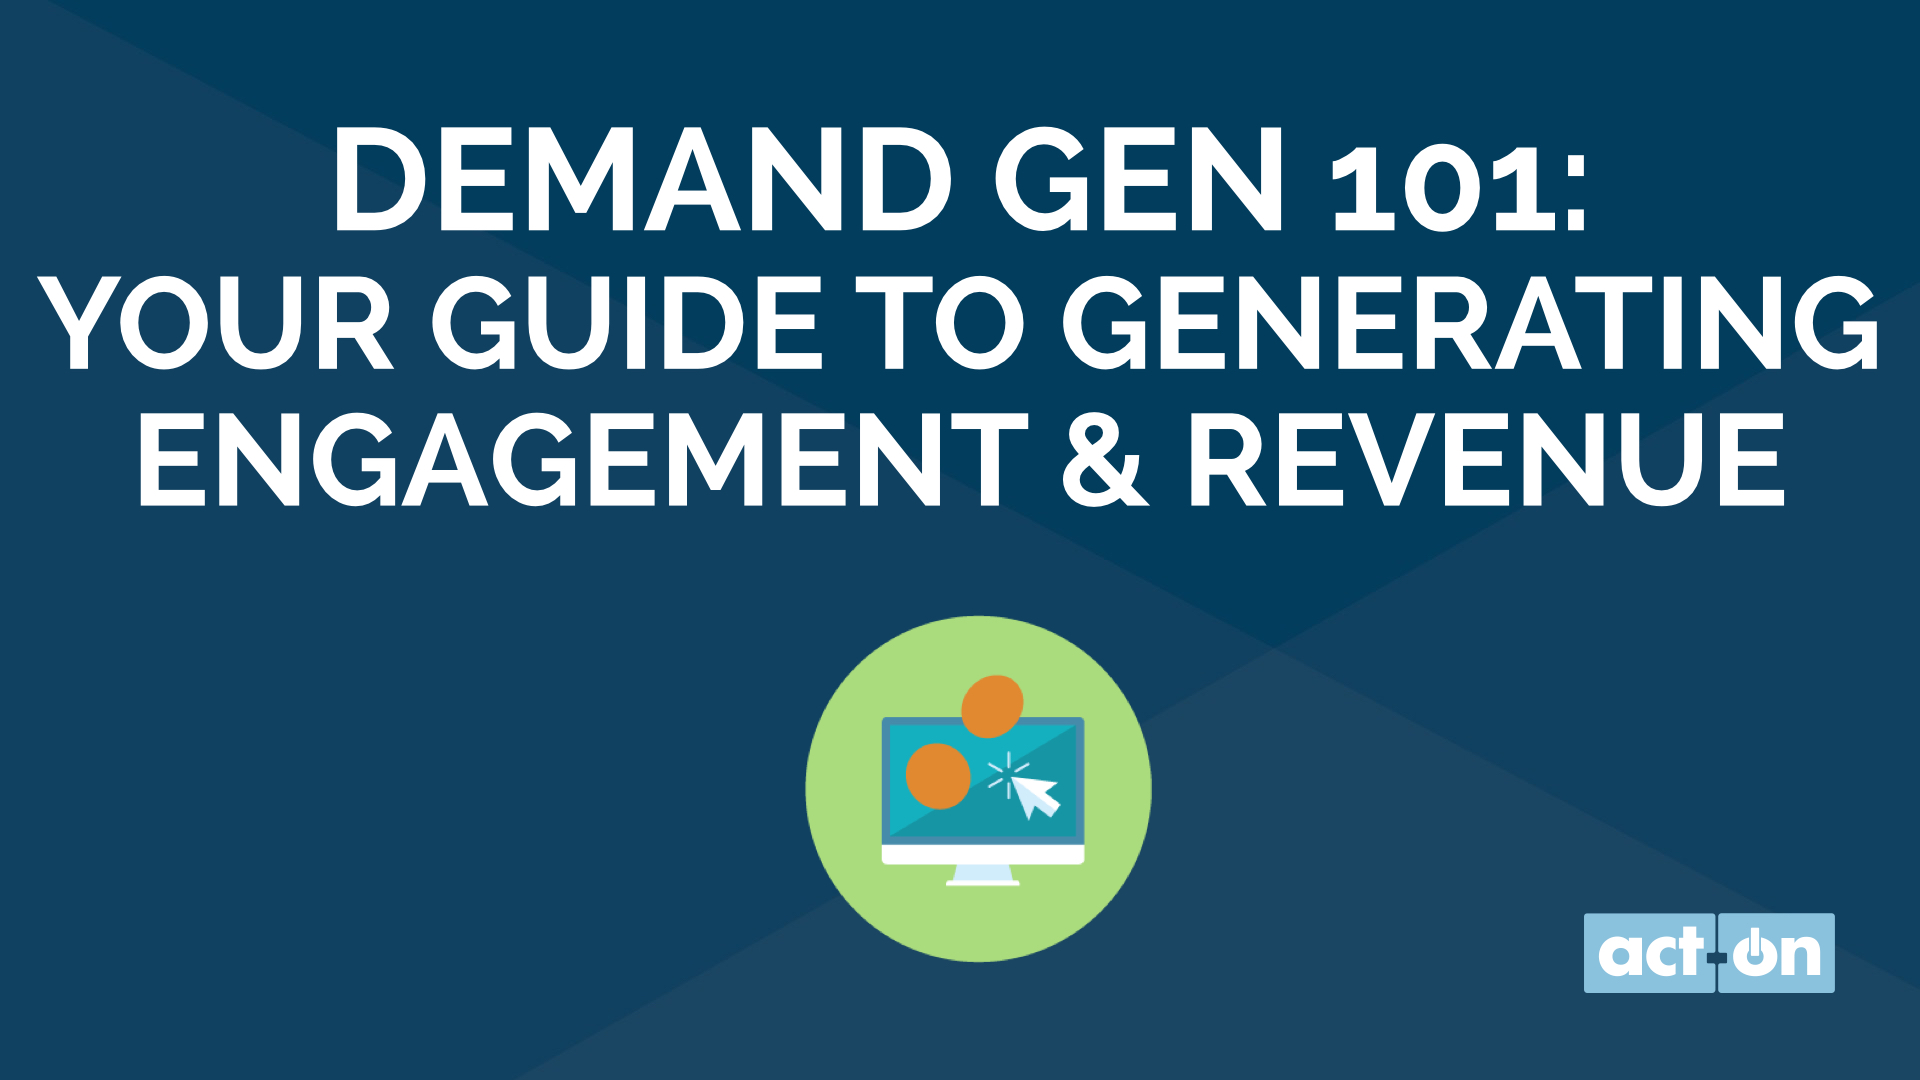 Demand Gen 101